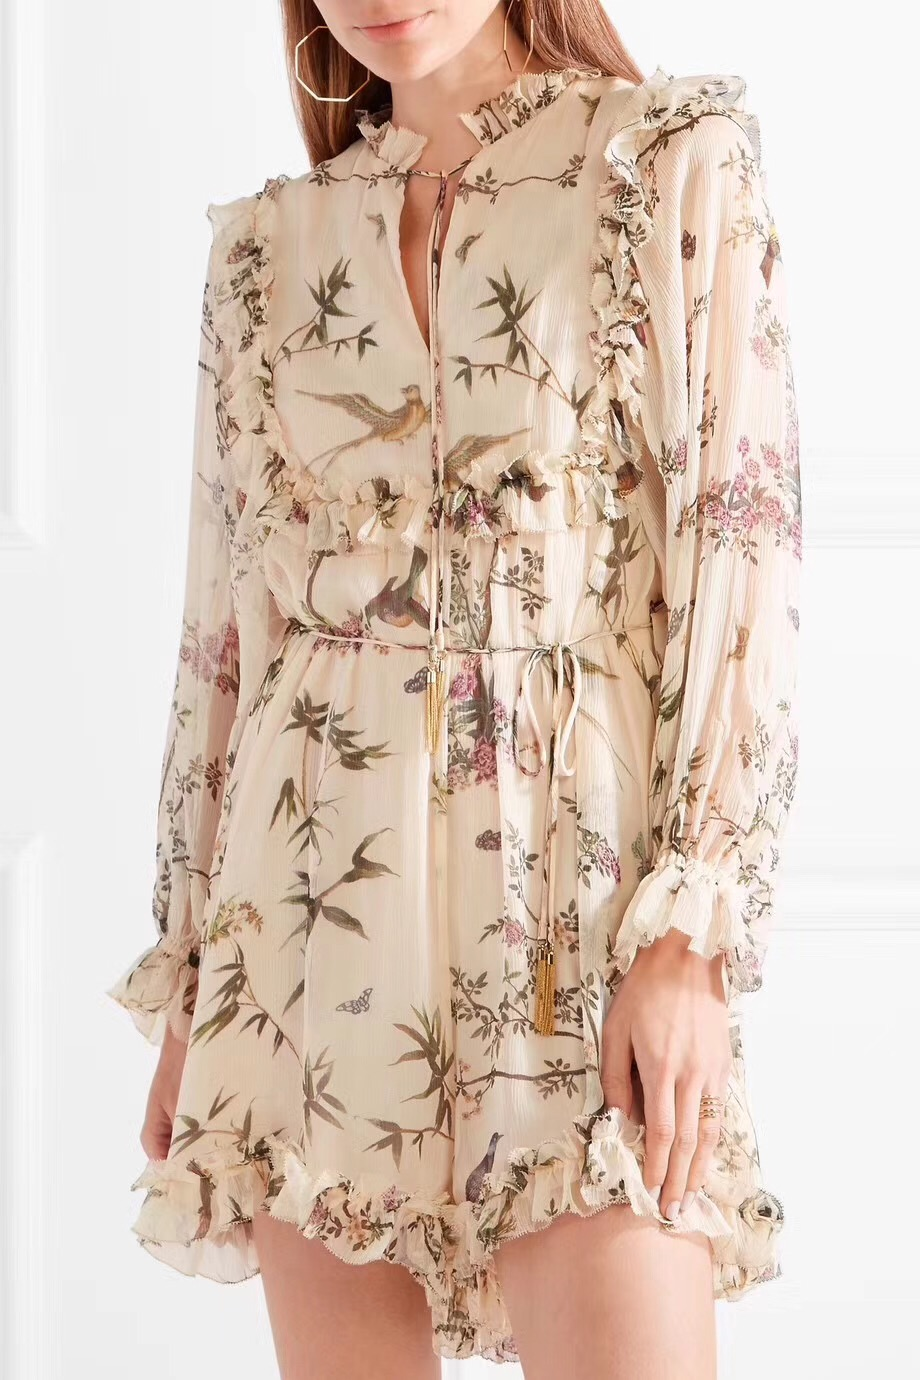 Women Frill Floral Silk Romper V-neck with Self-tie Detail Maples Frill Playsuit